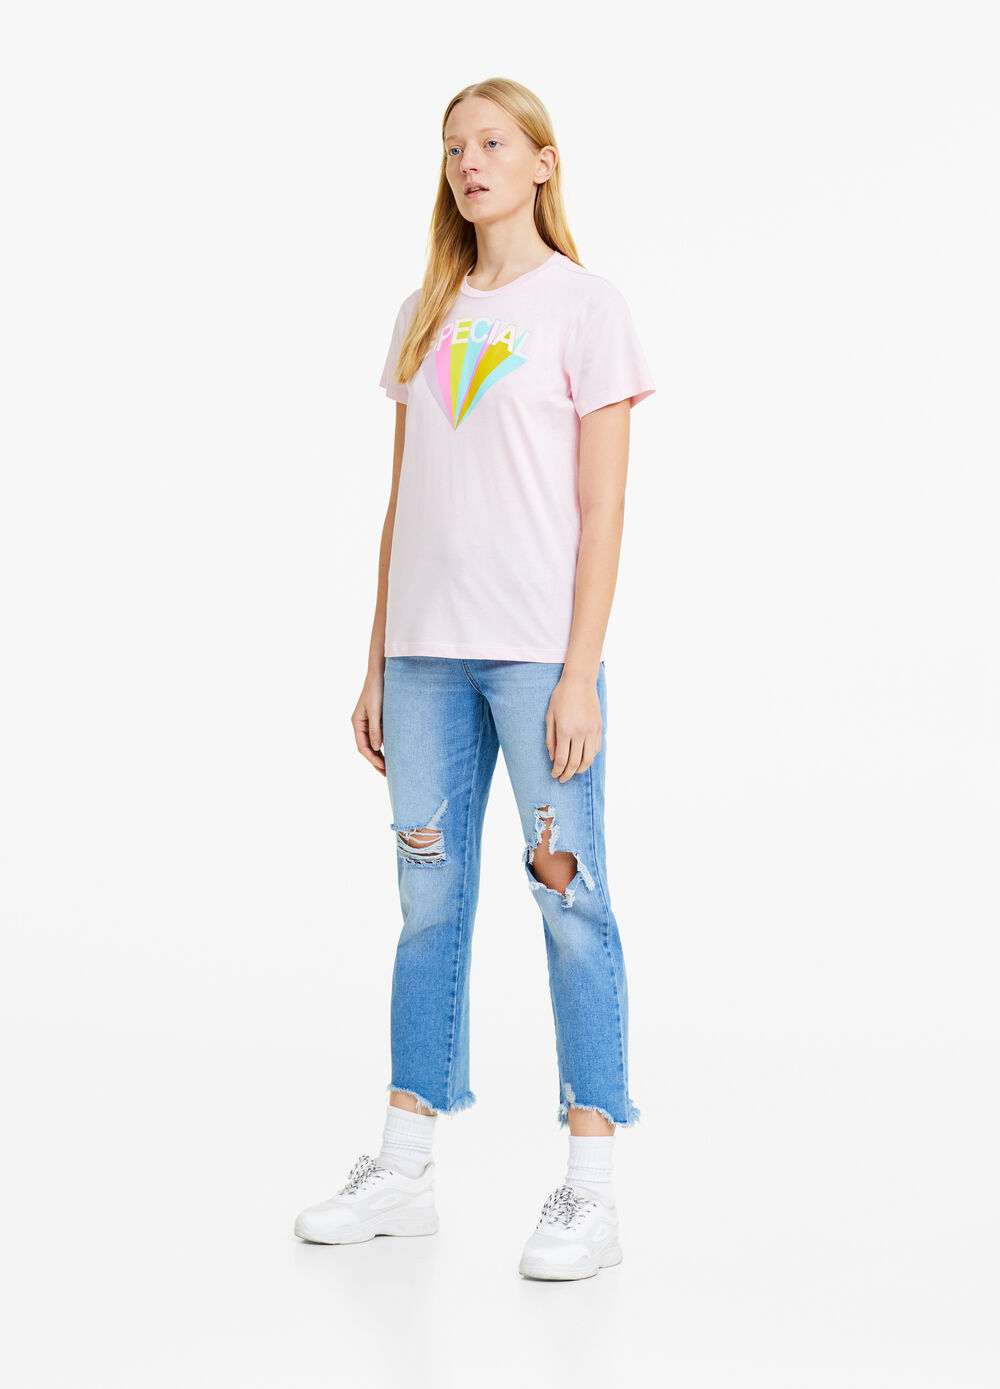 Cotton T-shirt with rainbow print